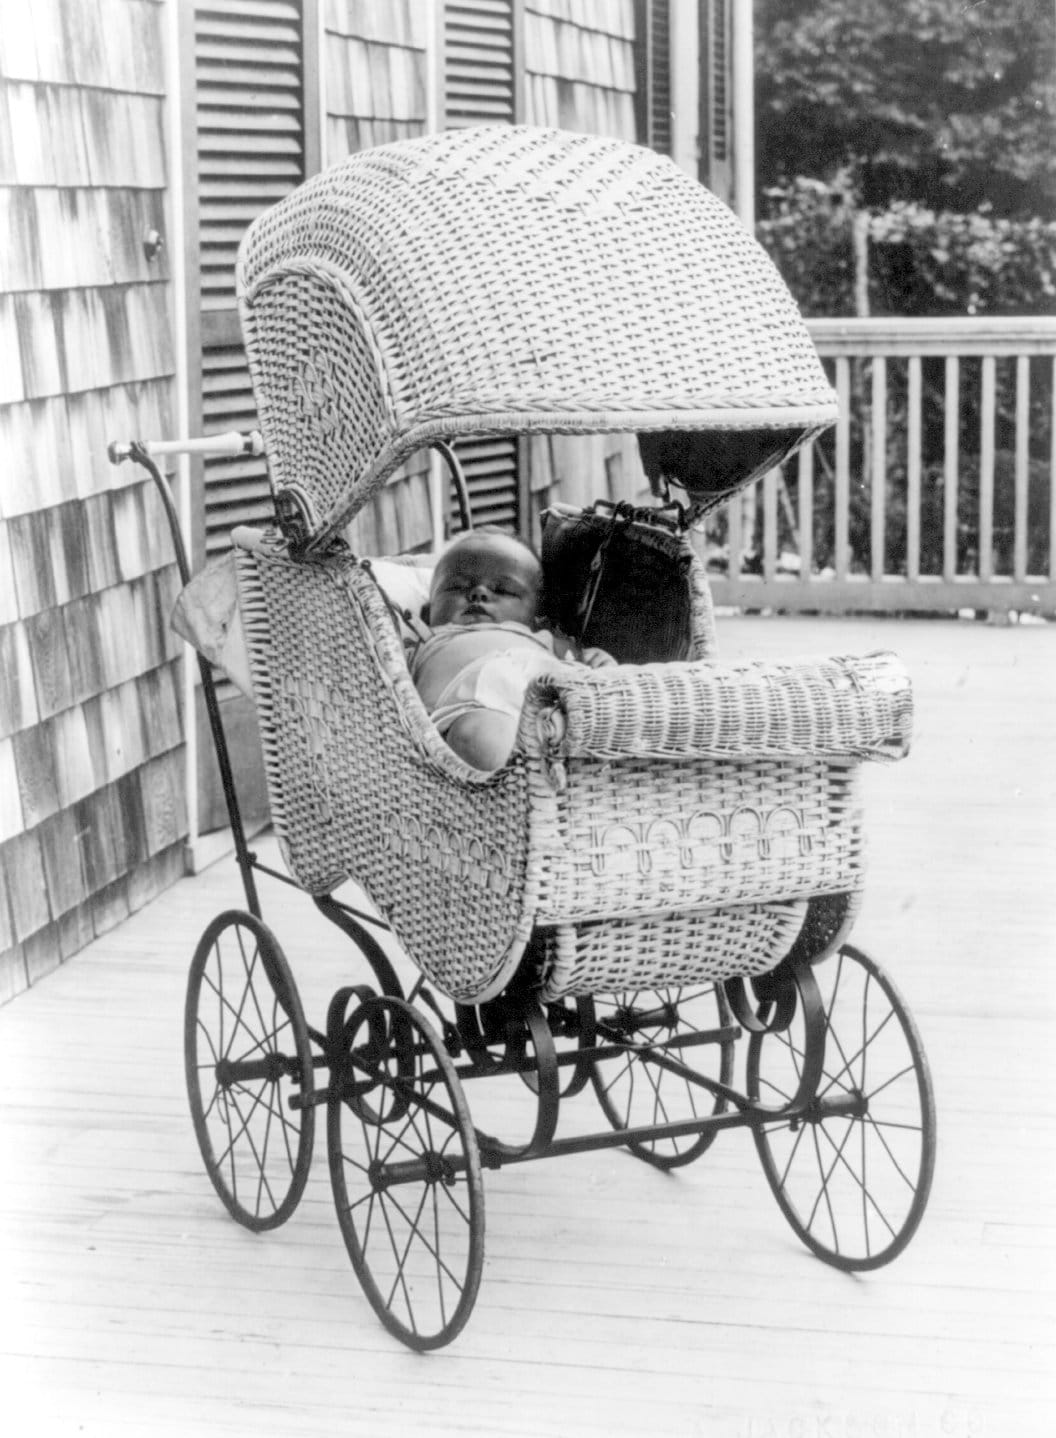 Little baby in a carriage napping outside (c1912)